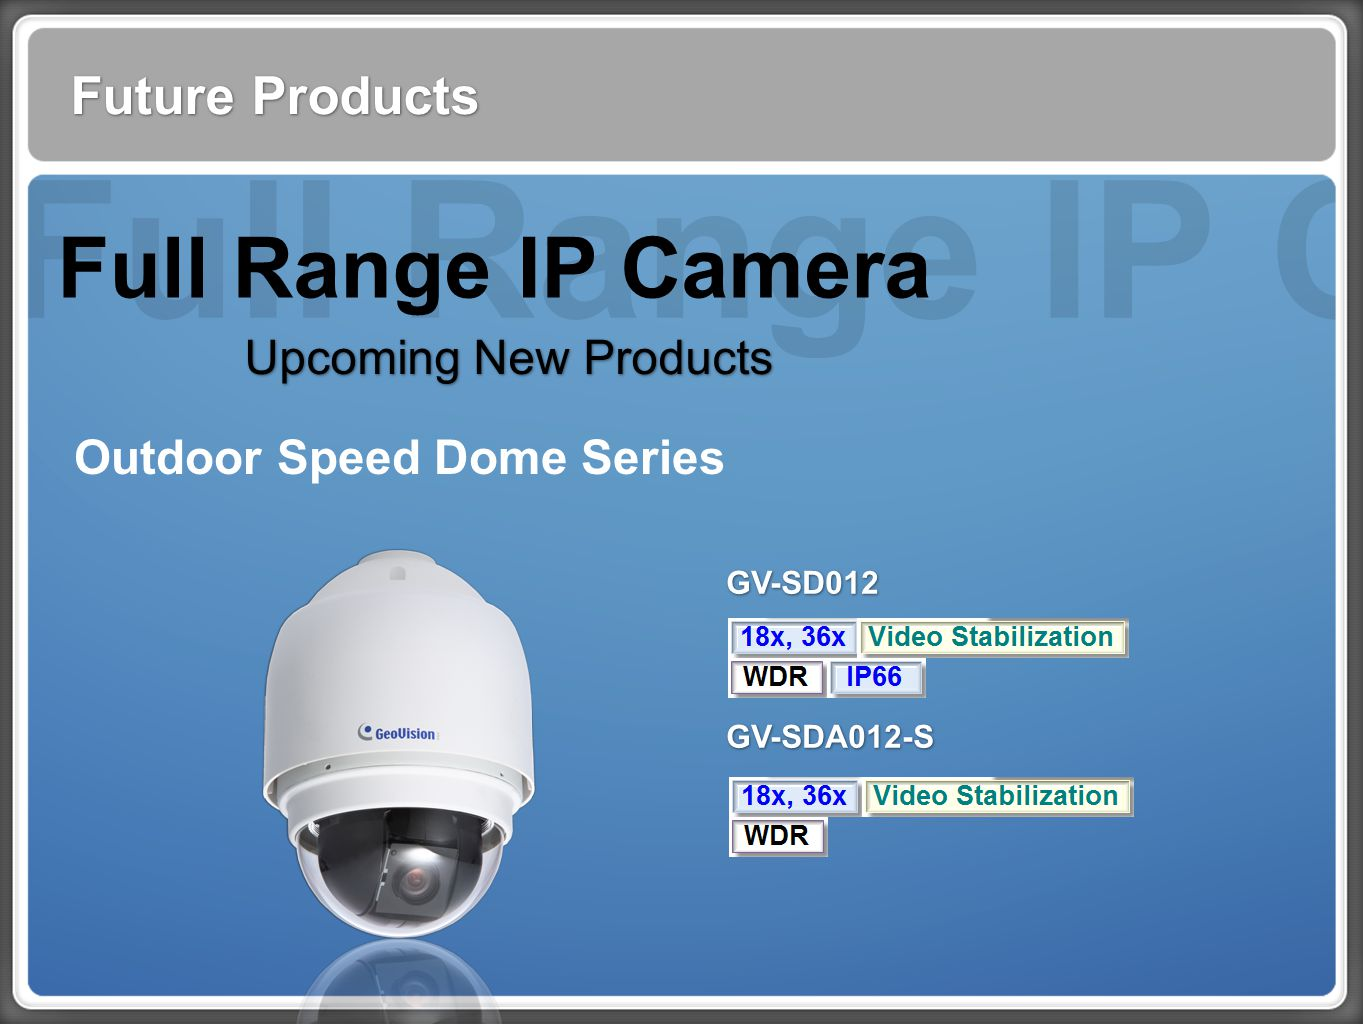 Full Range IP Cam Future Products Full Range IP Camera Upcoming New Products Outdoor Speed Dome Series GV-SD012 GV-SDA012-S GV-SD012 GV-SDA012-S